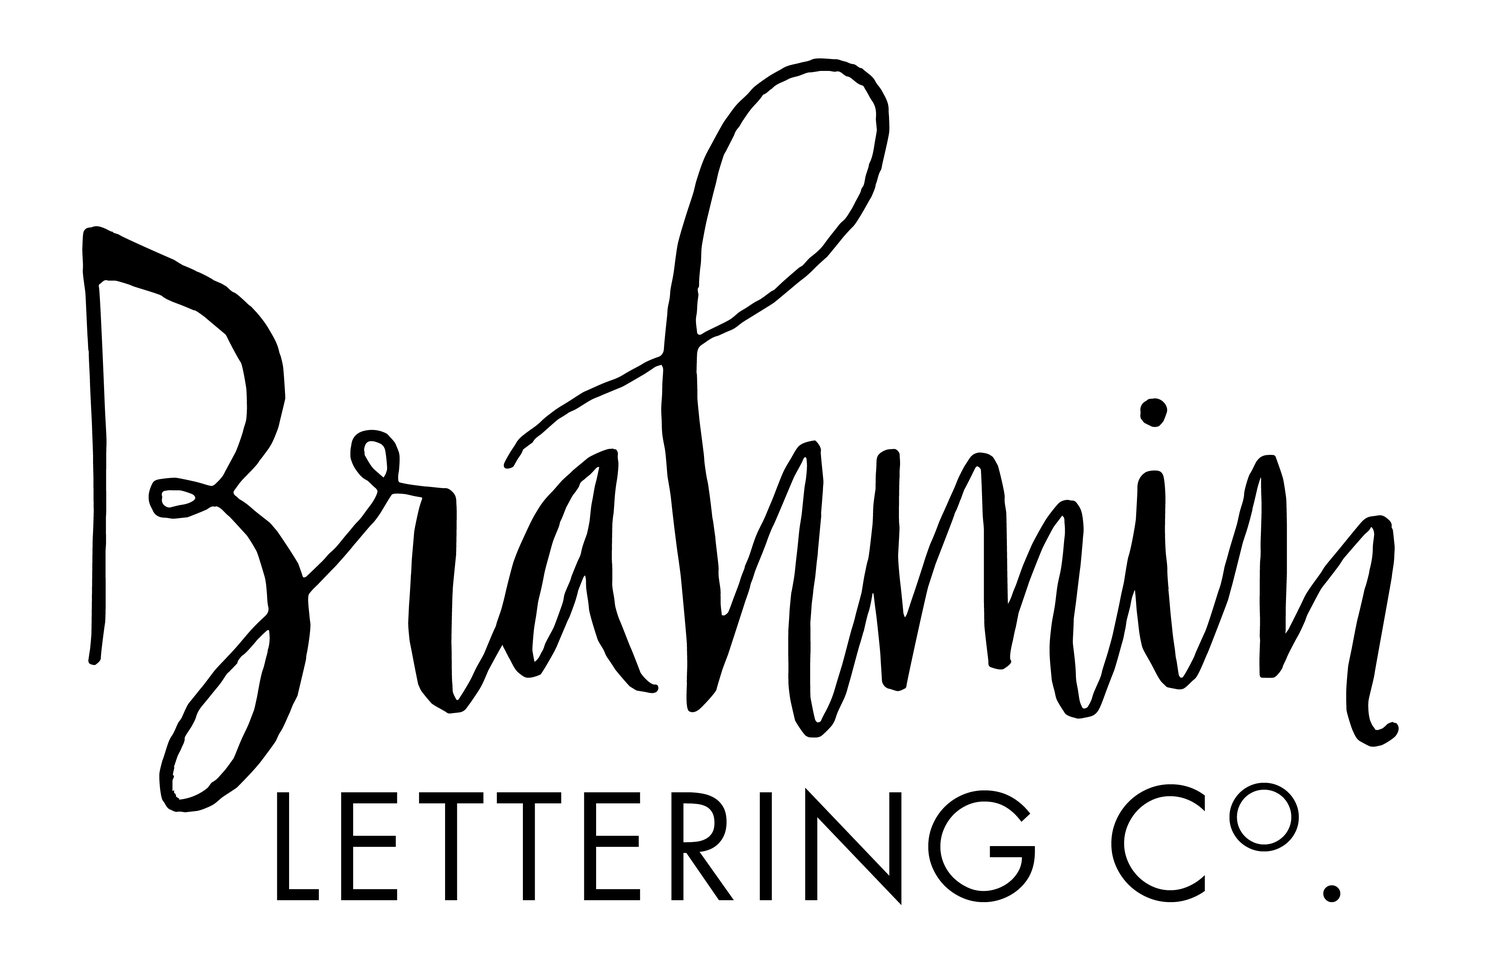 The brahmin lettering co